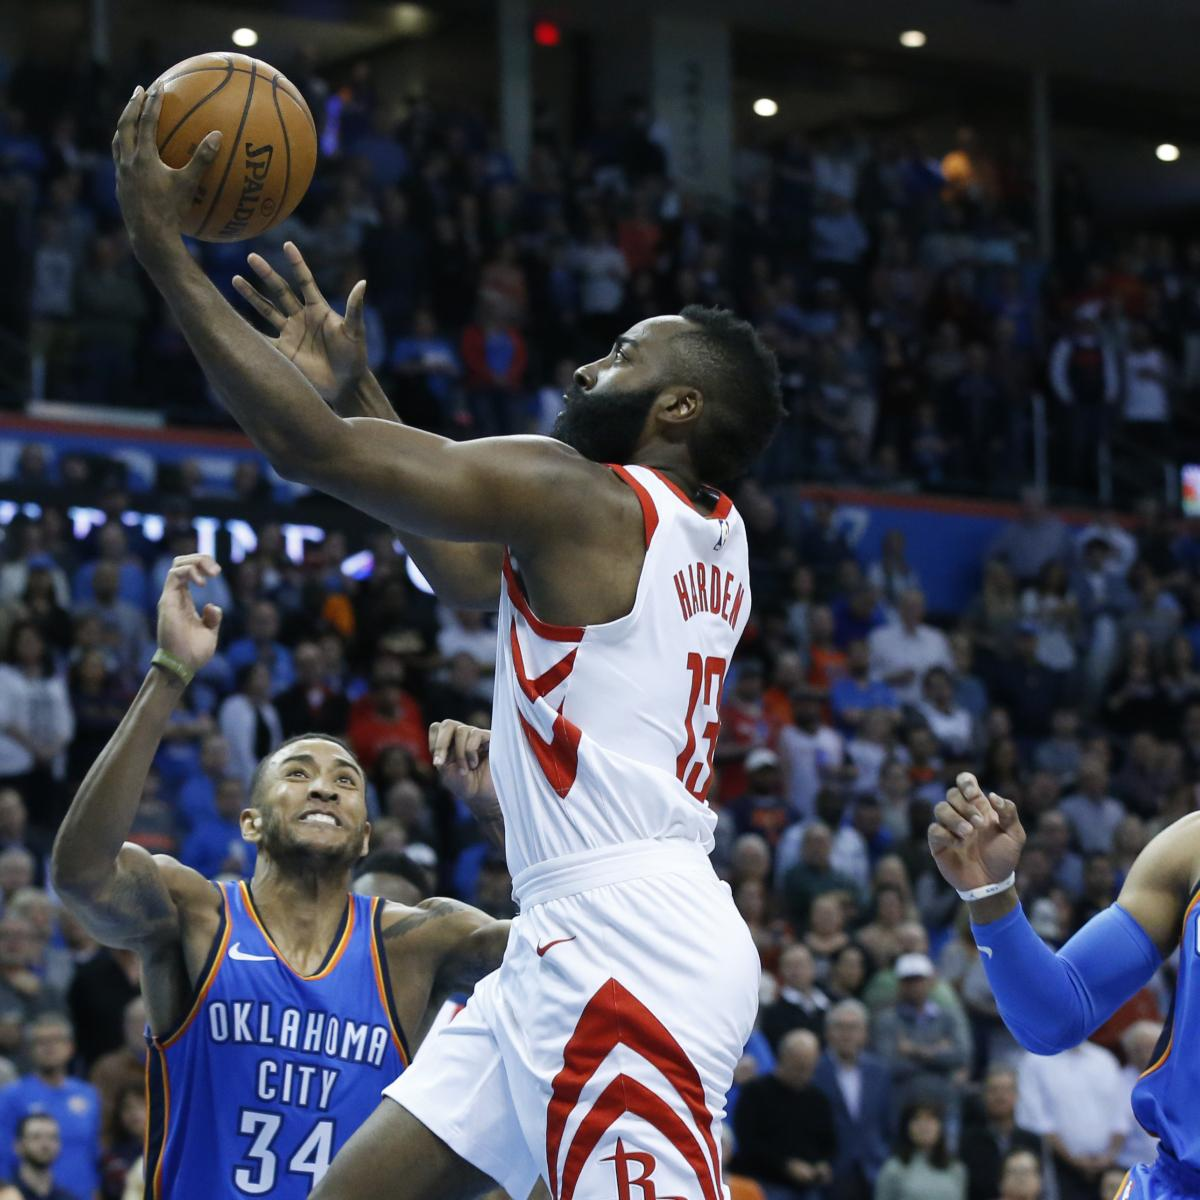 James Harden In Okc: James Harden, Rockets Shred Russell Westbrook And Thunder